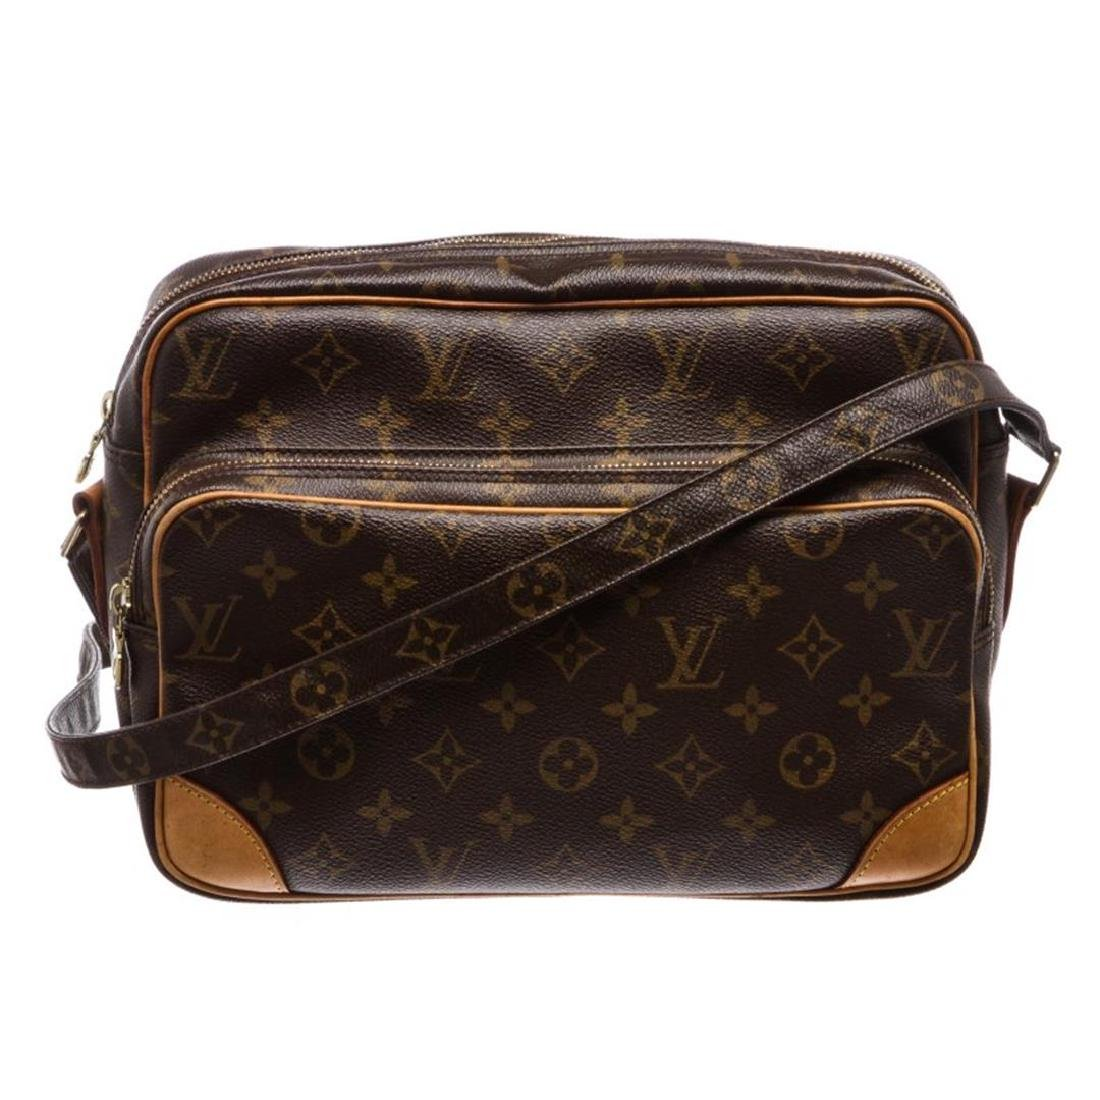 Louis Vuitton Monogram Canvas Leather Nile GM Shoulder